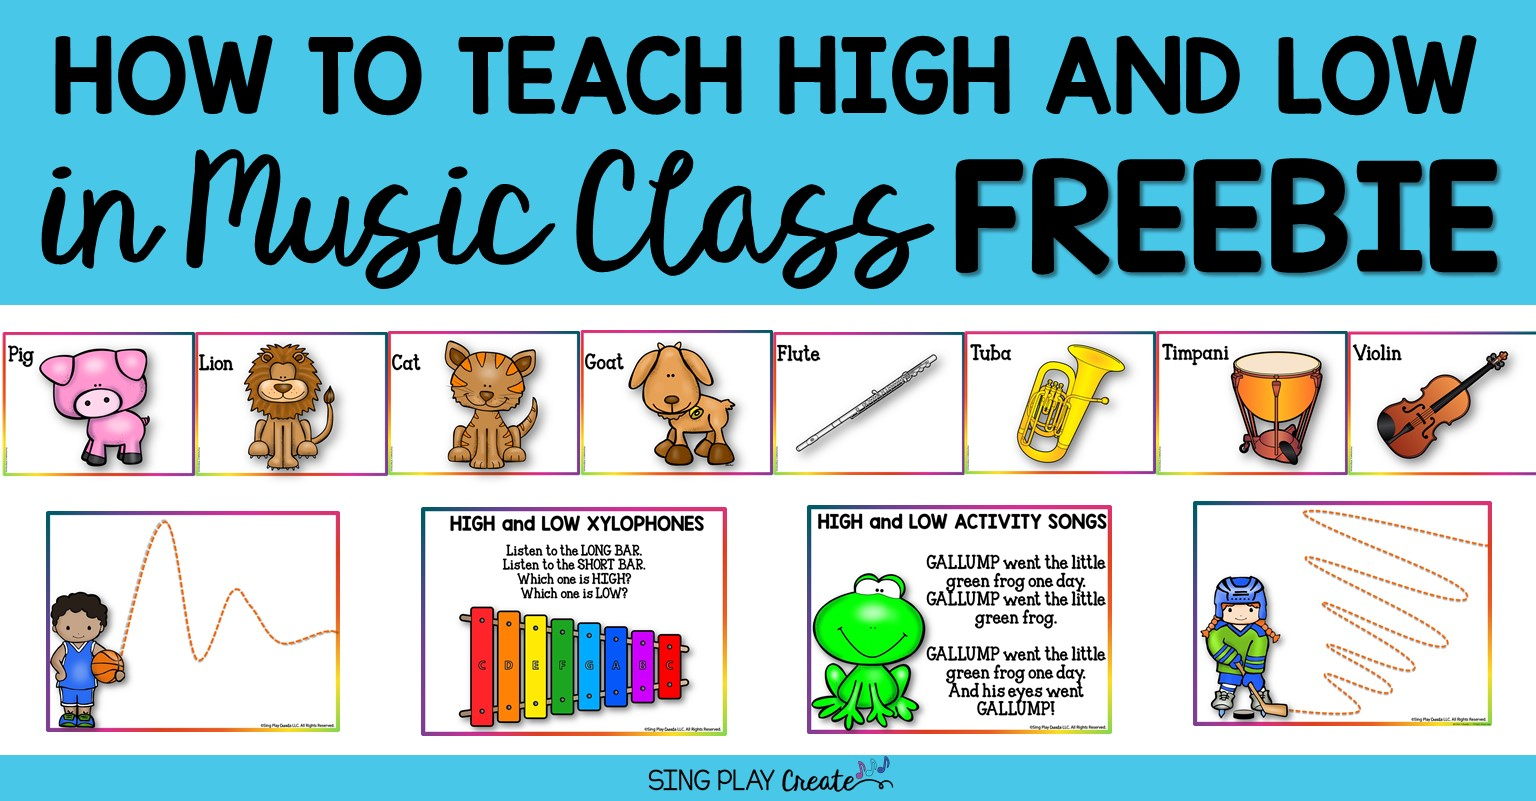 hight resolution of How to Teach High and Low in Music Class